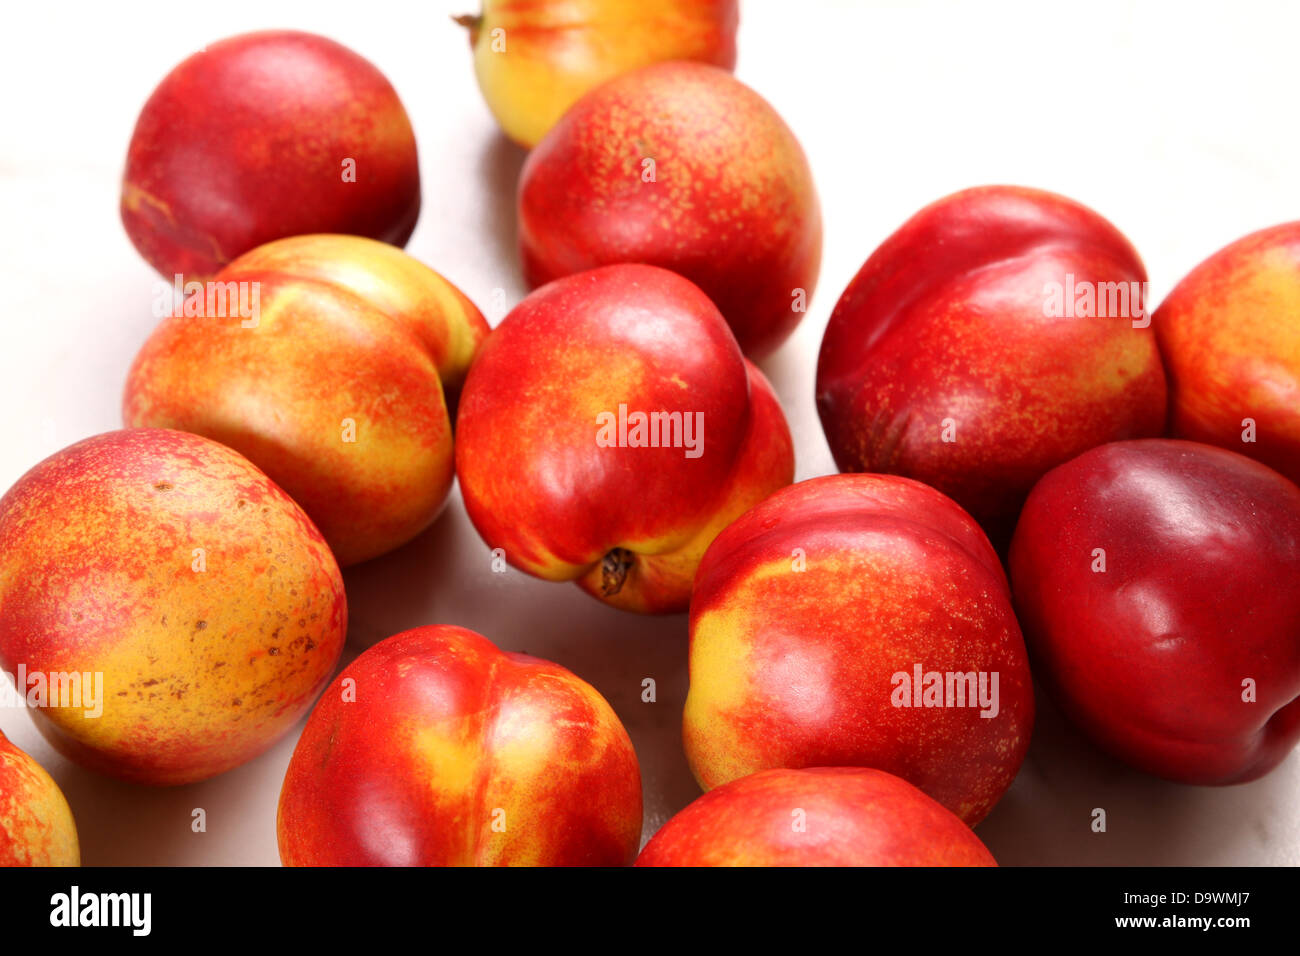 Lots of Nectarines on the kitchen table background - Stock Image